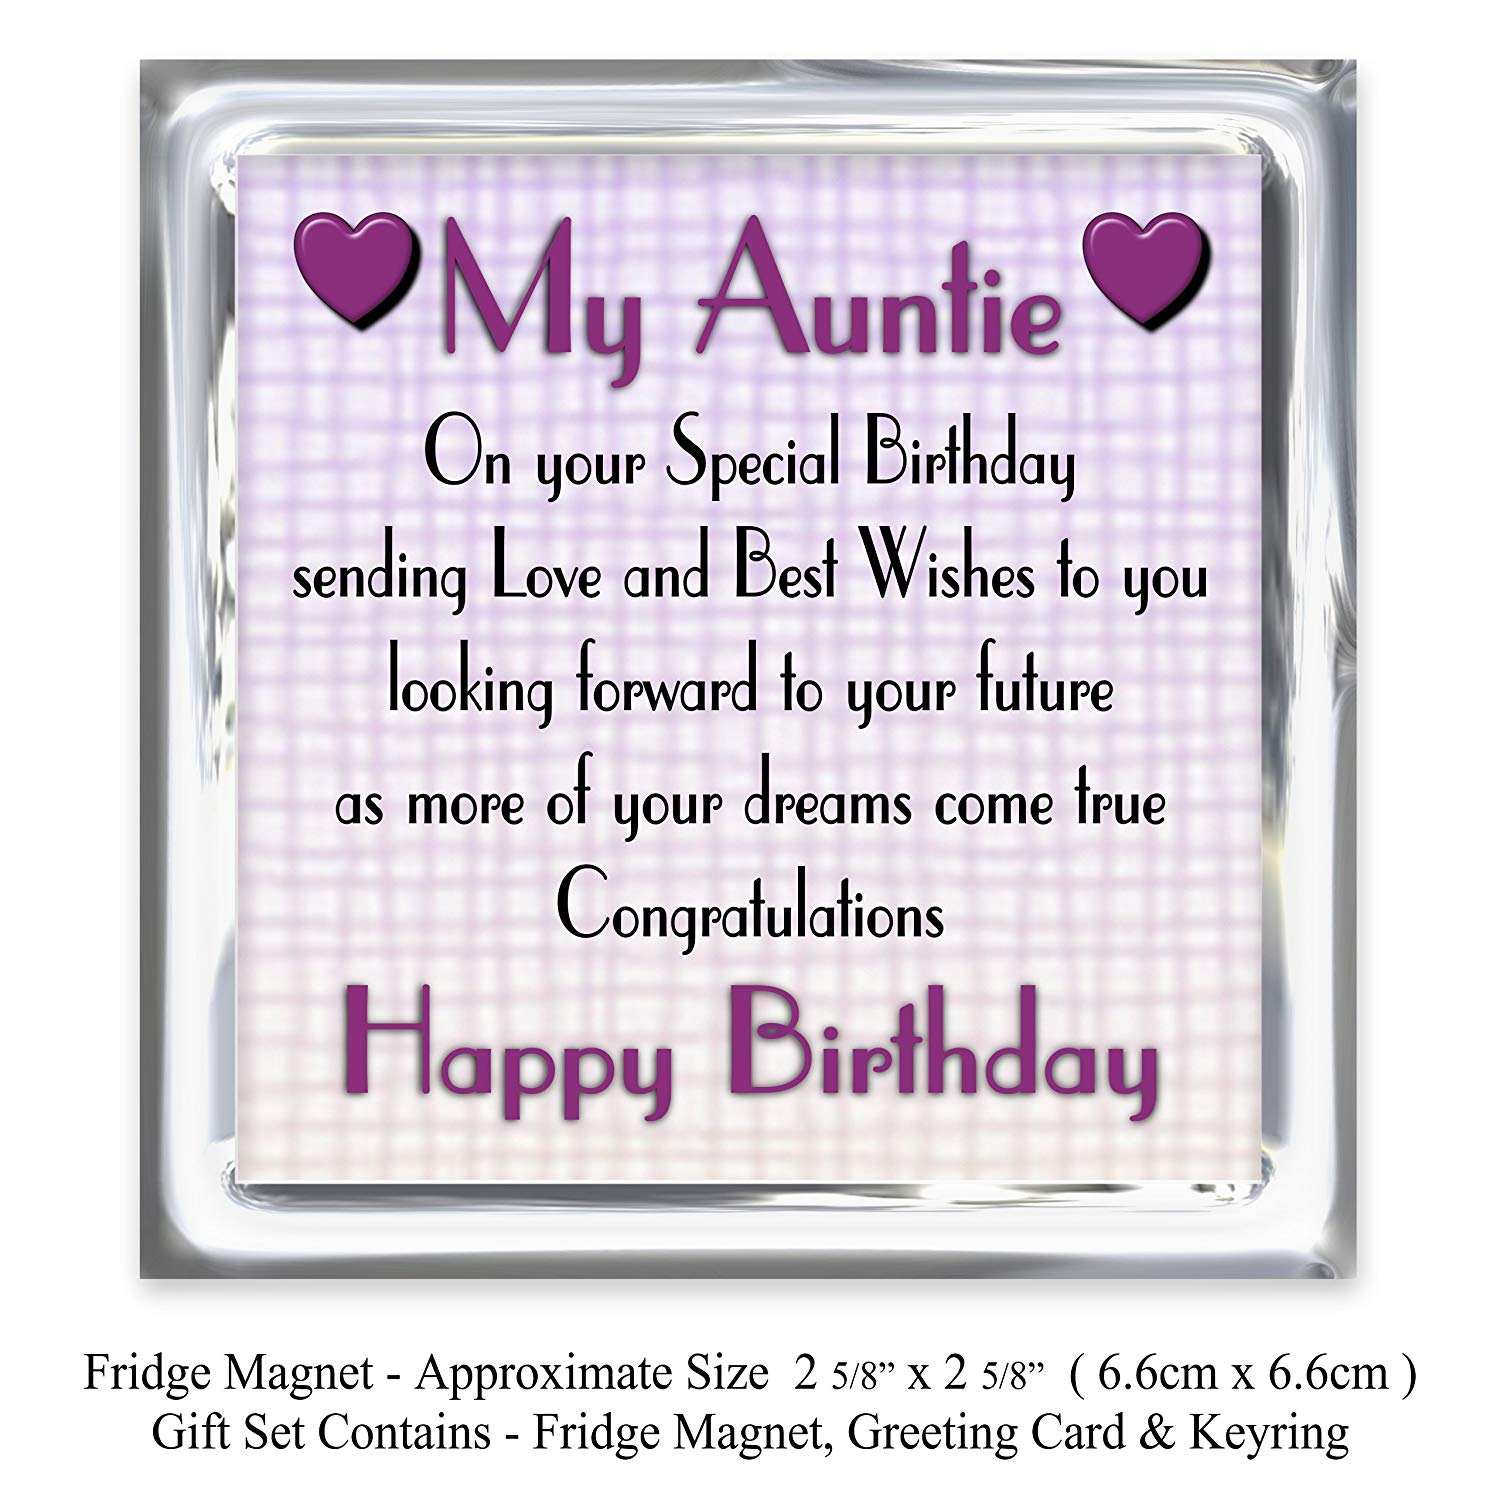 auntie 70th birthday card ; 91sJv37N0BL